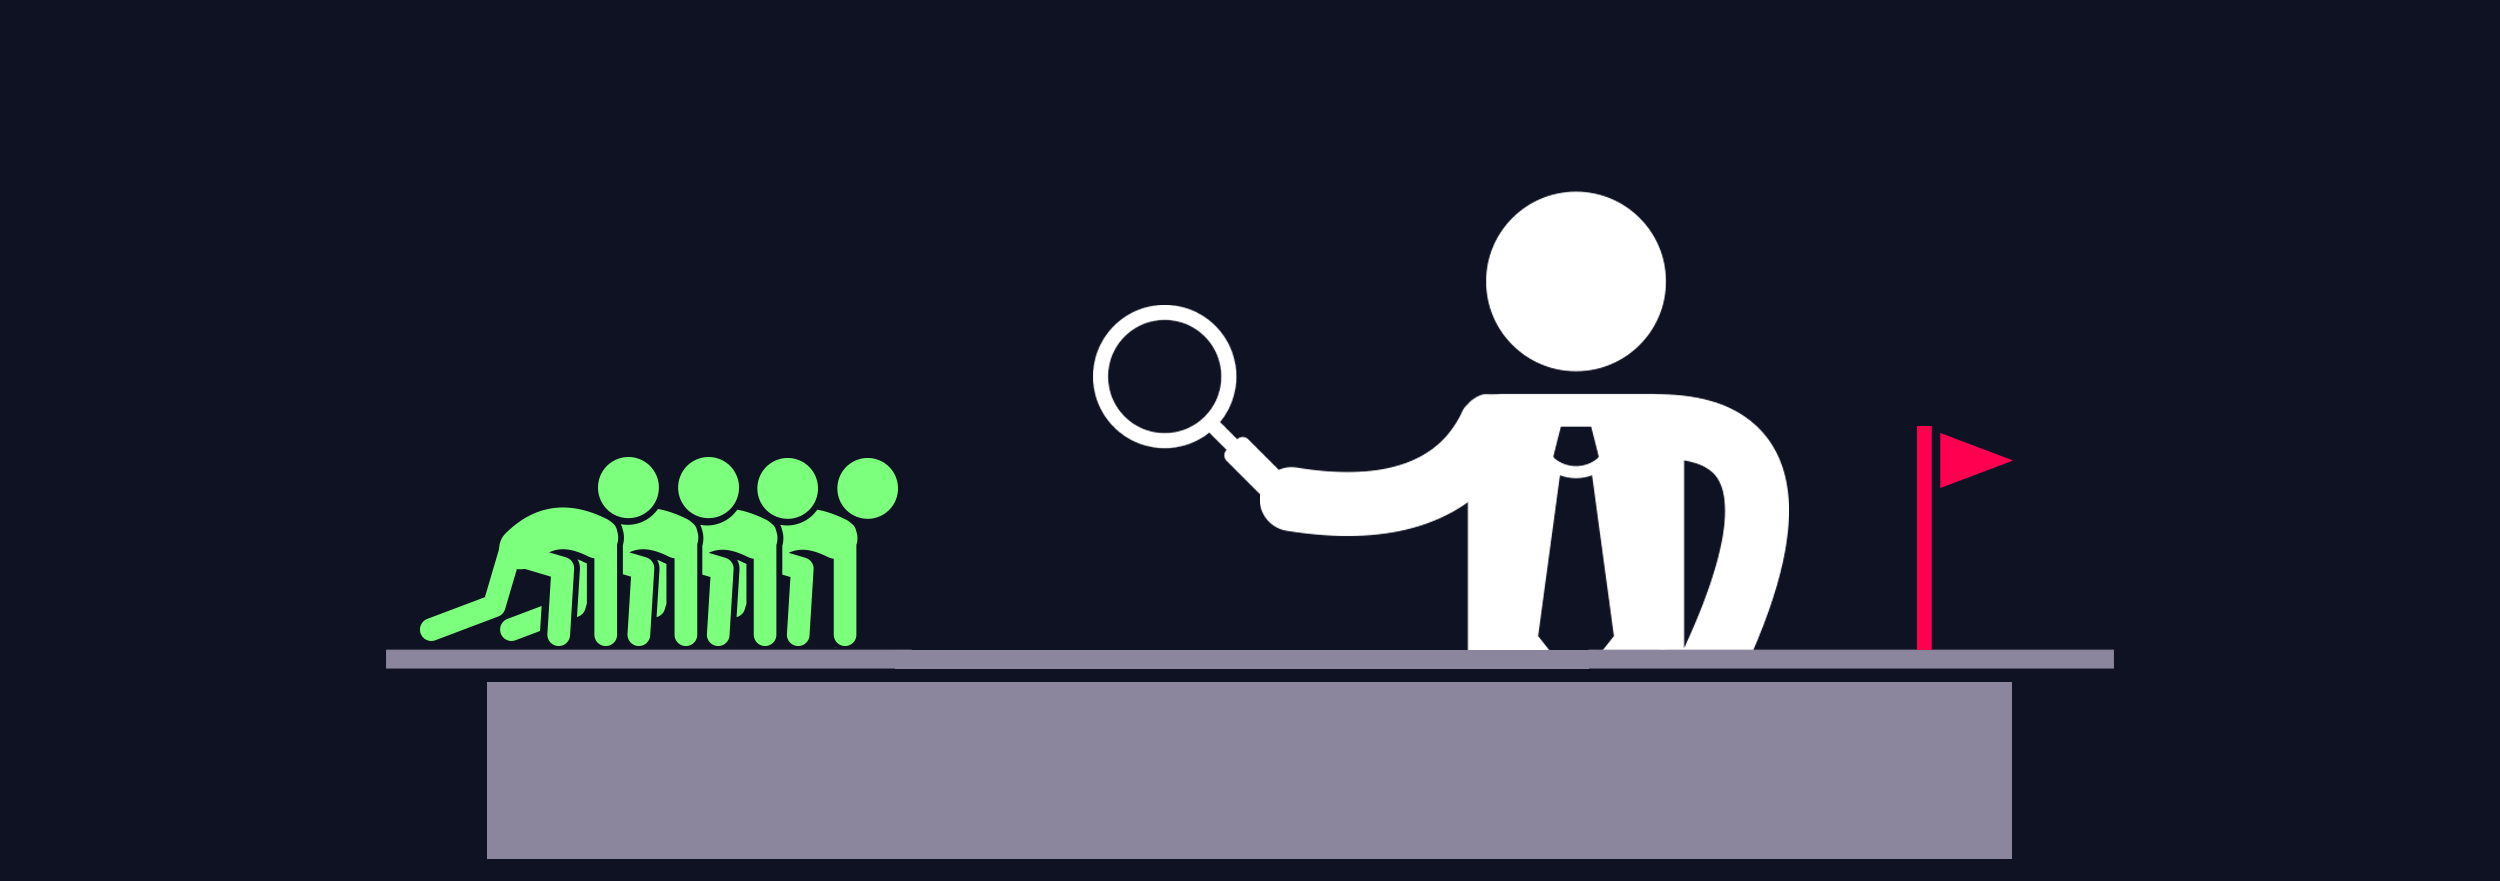 Market Research: Ladder's Competitors and Influencers